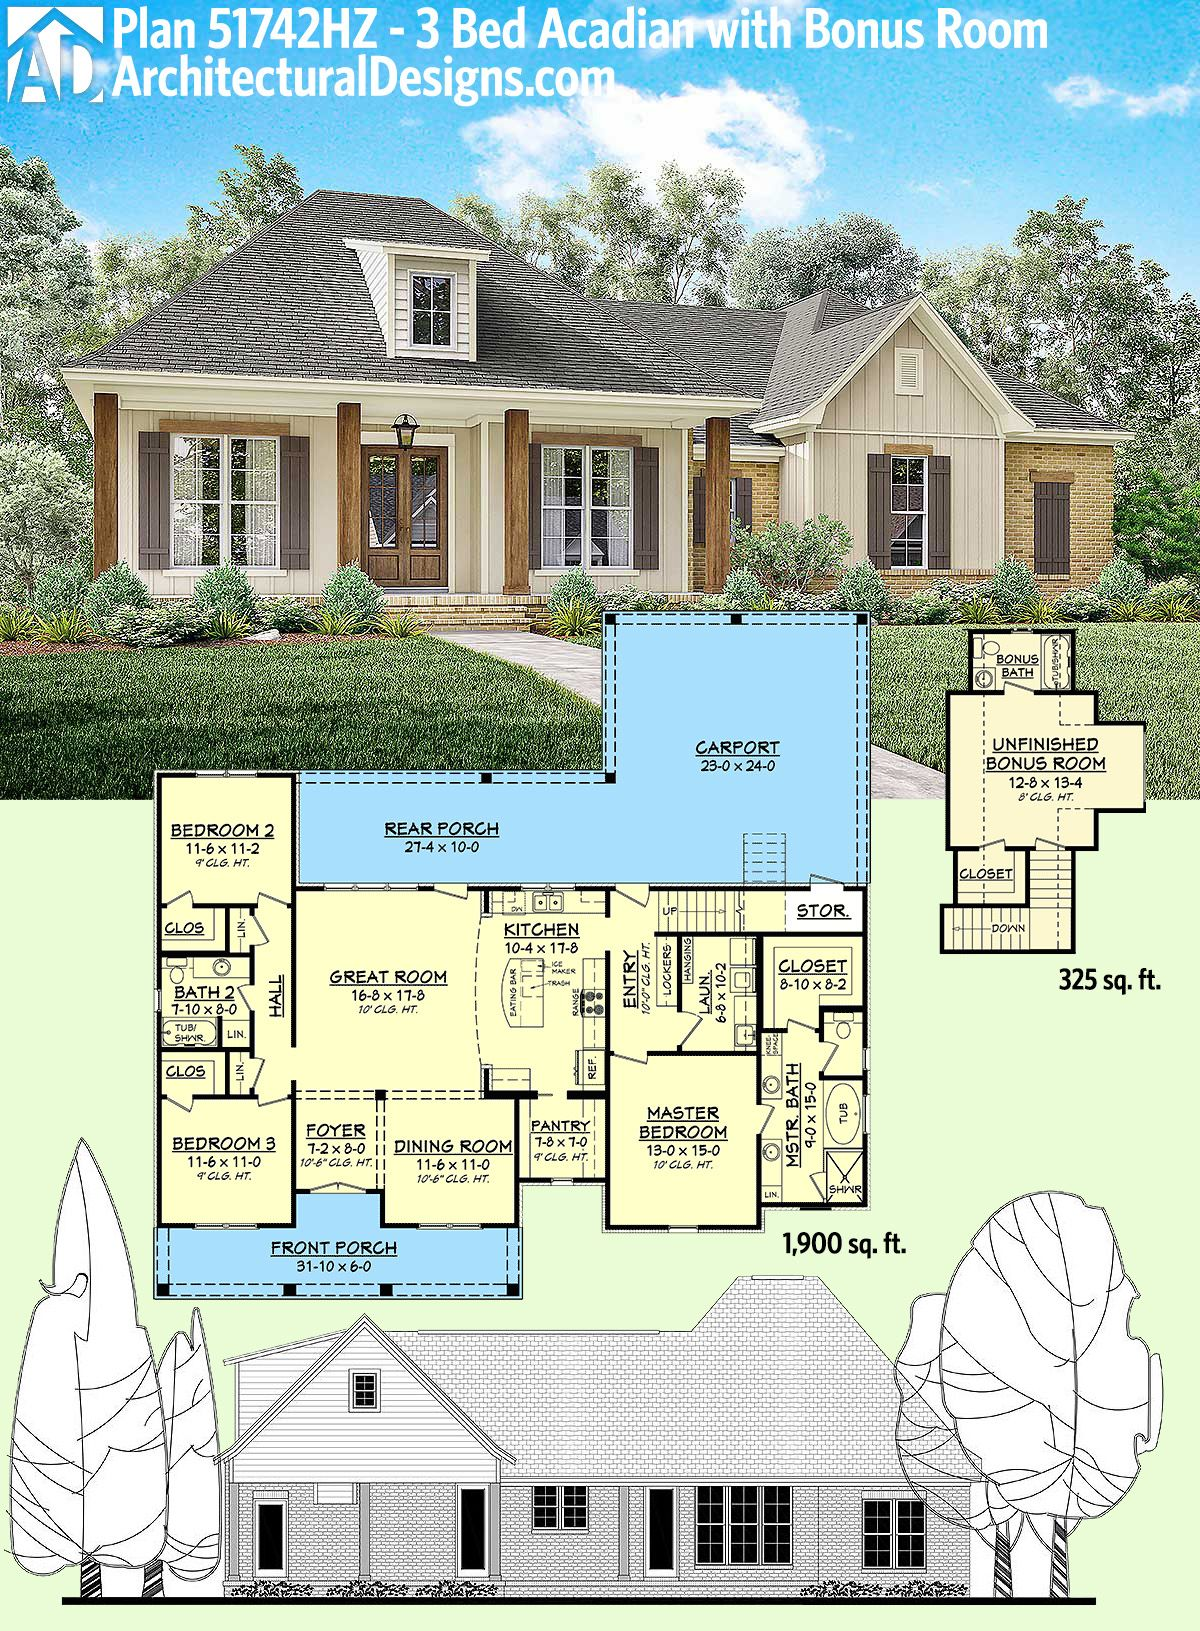 Architectural designs acadian house plan 51742hz gives you for Garage architectural plans